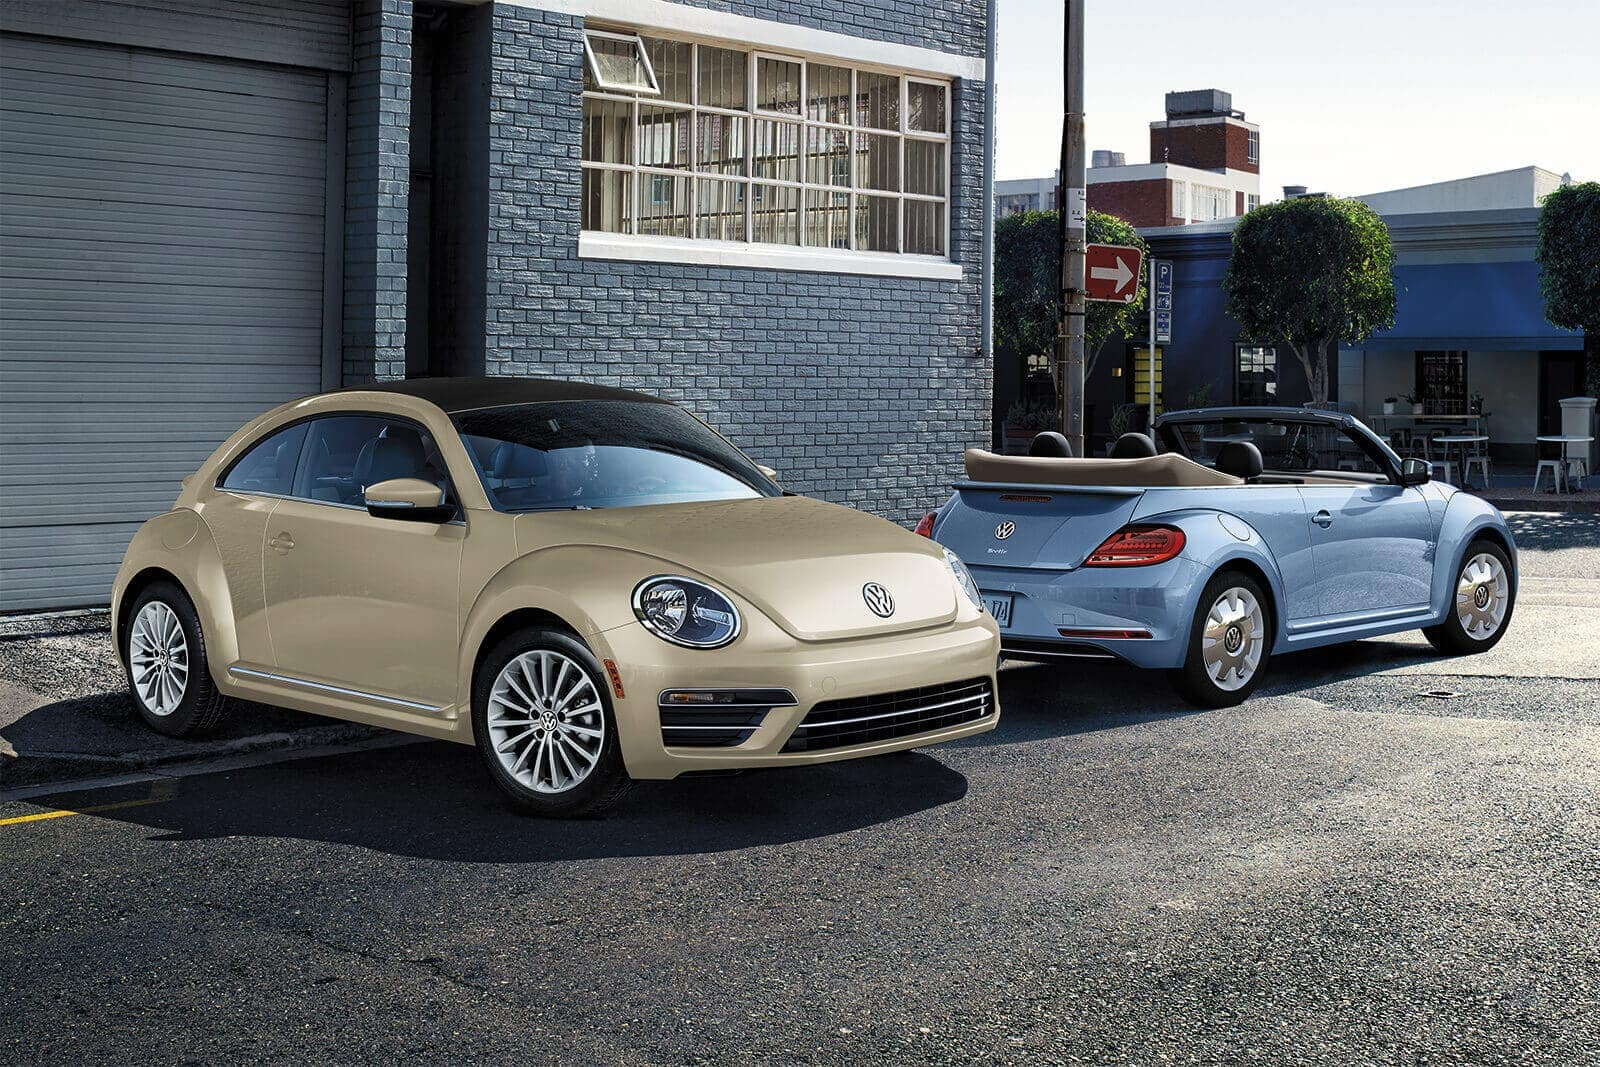 2019 Volkswagen Beetle final edition convertible in blue and safari